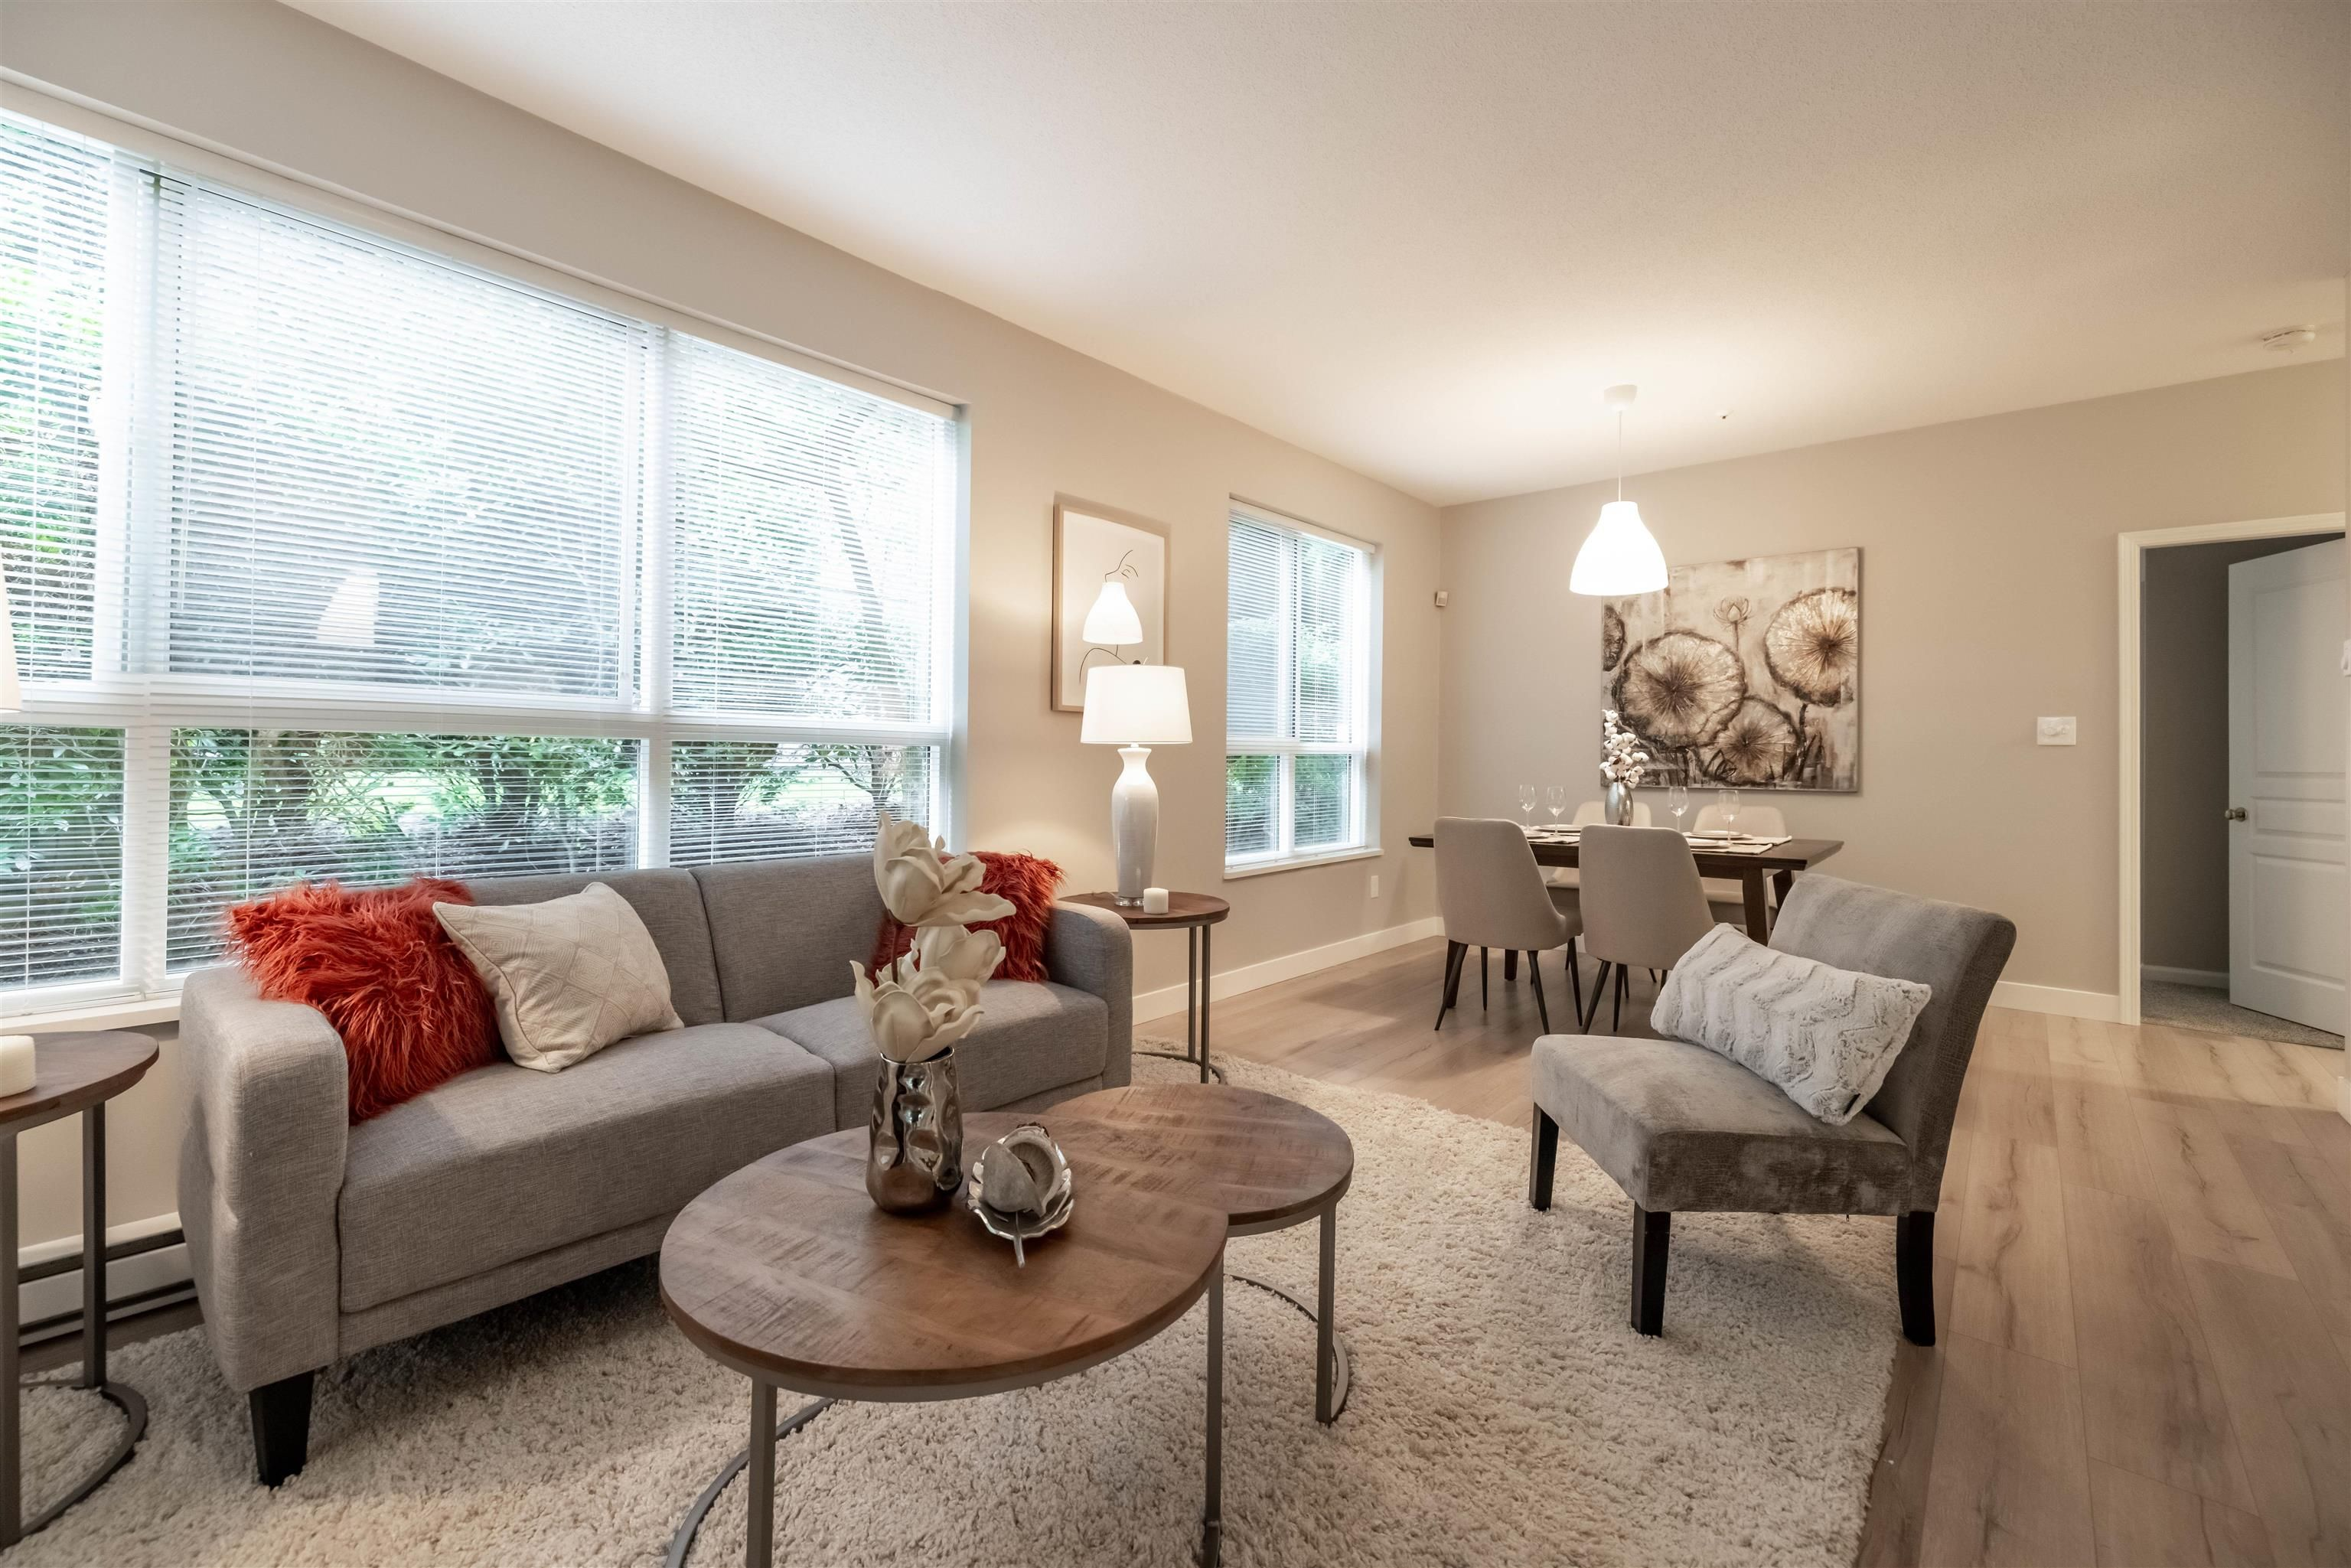 """Main Photo: 105 8139 121A Street in Surrey: Queen Mary Park Surrey Condo for sale in """"THE BIRCHES"""" : MLS®# R2623168"""